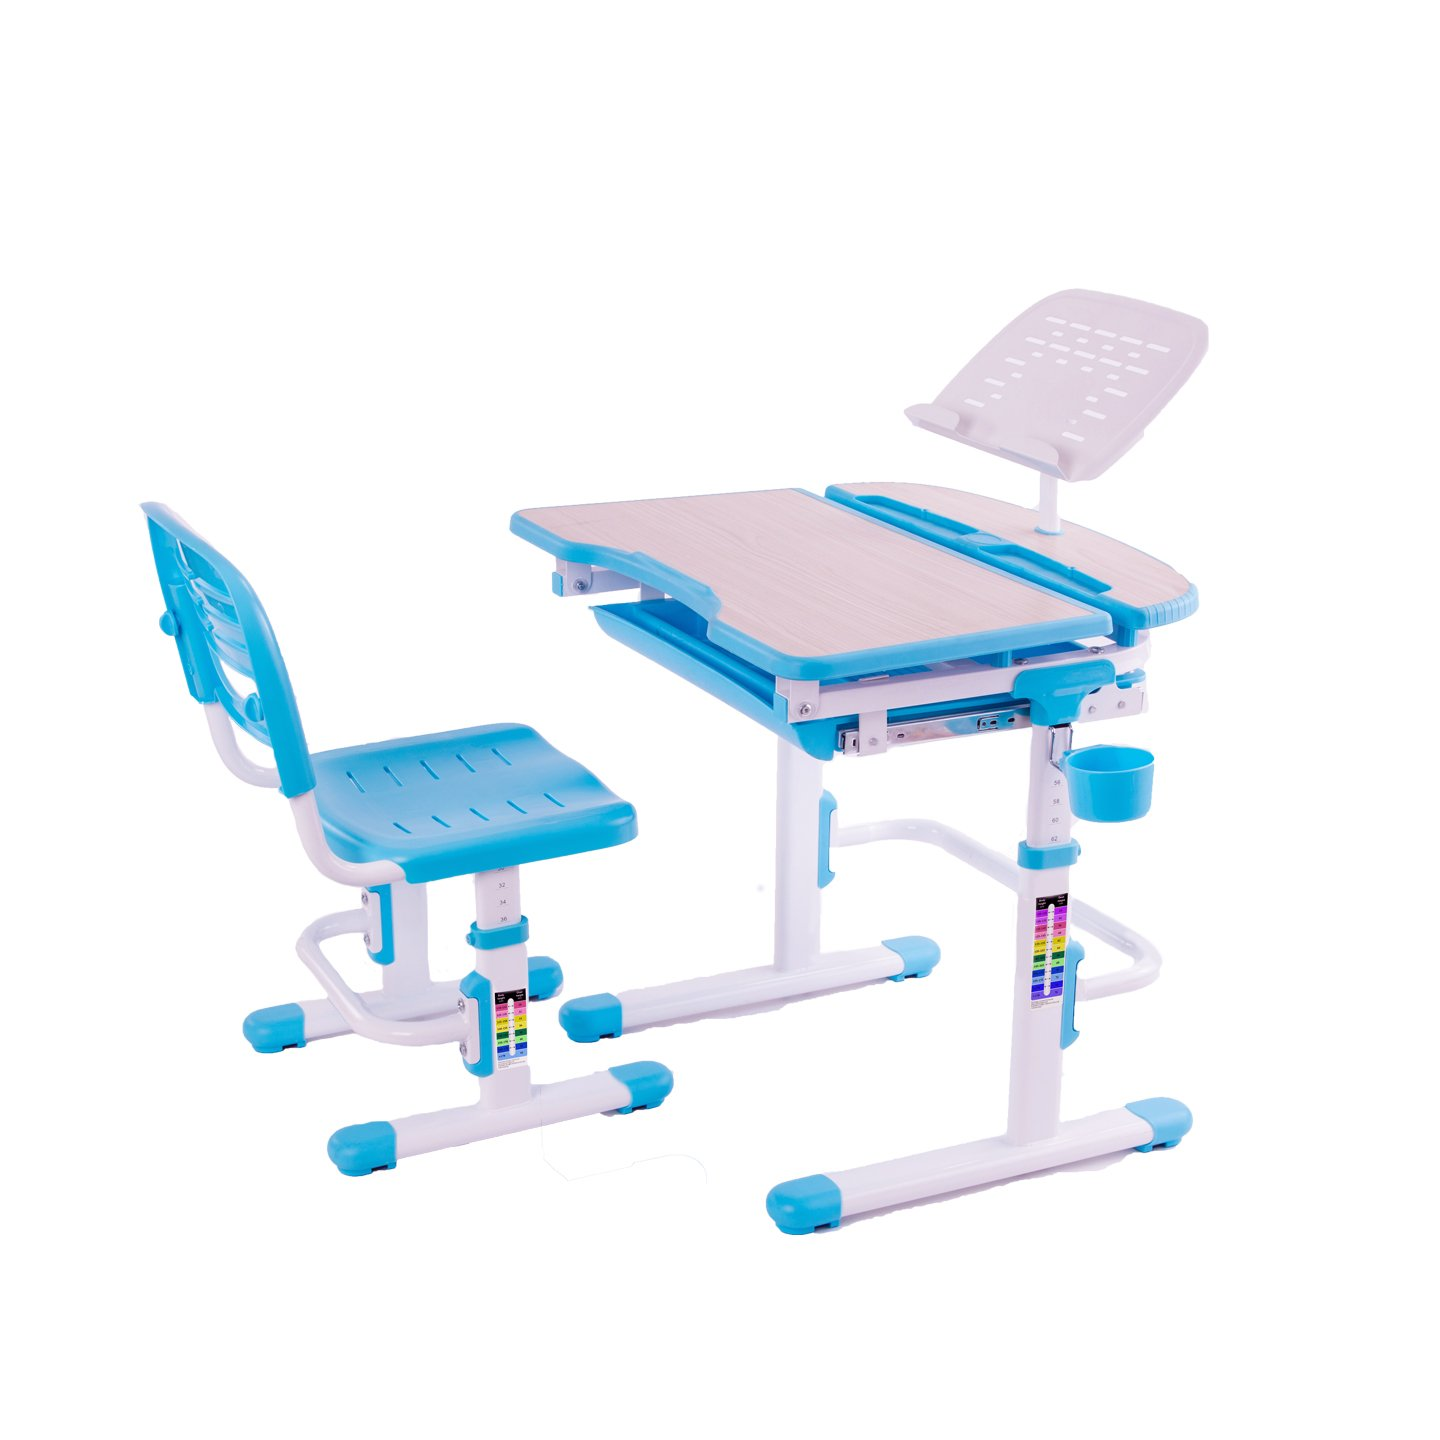 Reo-Smart ''Bobbie'' Deluxe Height Adjustable Children Desk & Chair Set. Interactive Work Station with Drawer Storage for Kids, Boys and Girls. Premium Ergonomic Design with Quality for Posture. (Blue)